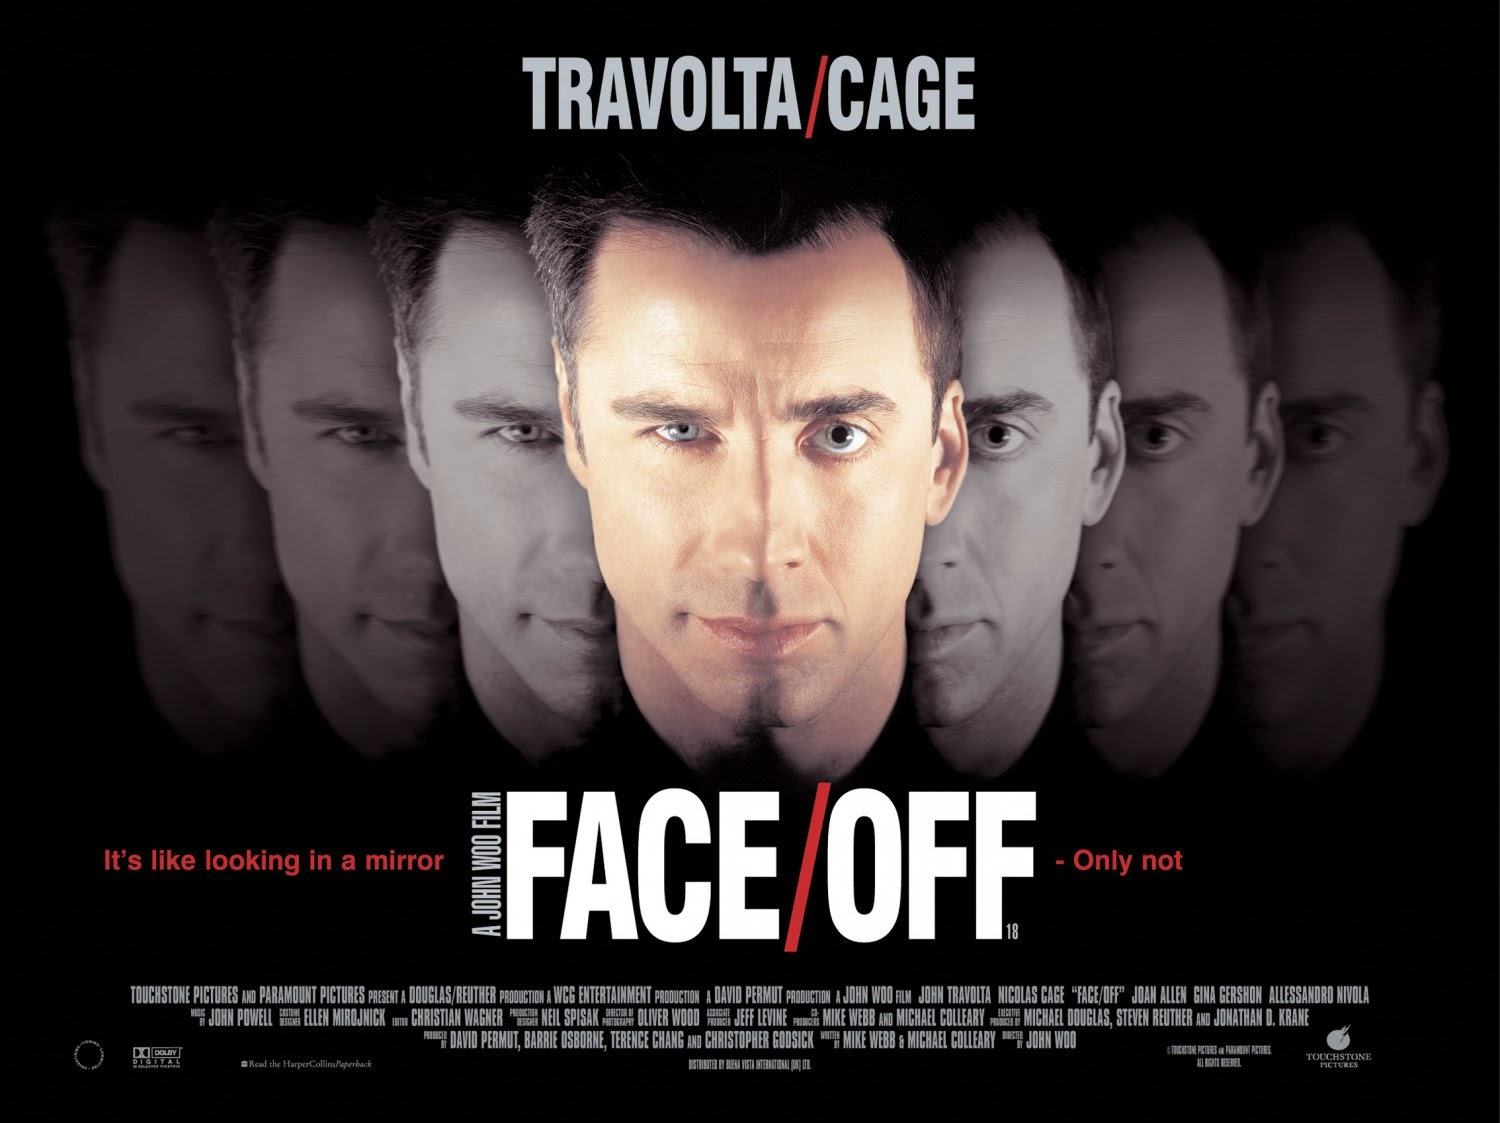 Face off is another film from the large collection of quality science fiction released in 1997 including titles such as men in black the fifth element